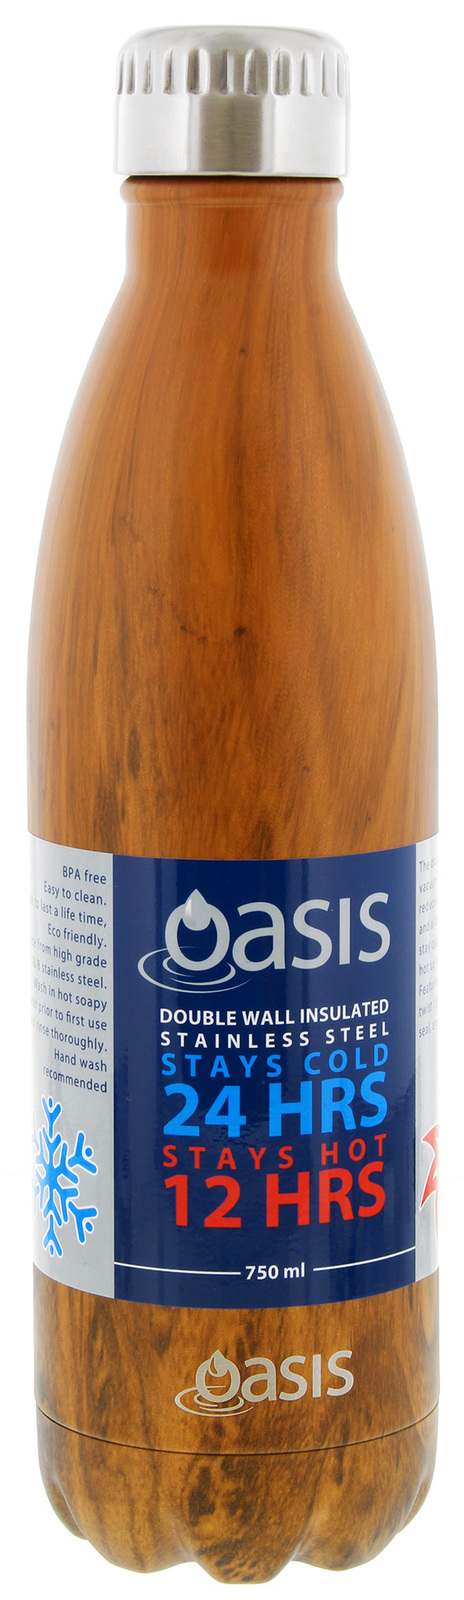 Oasis Insulated Stainless Steel Water Bottle - Teak (750ml) image